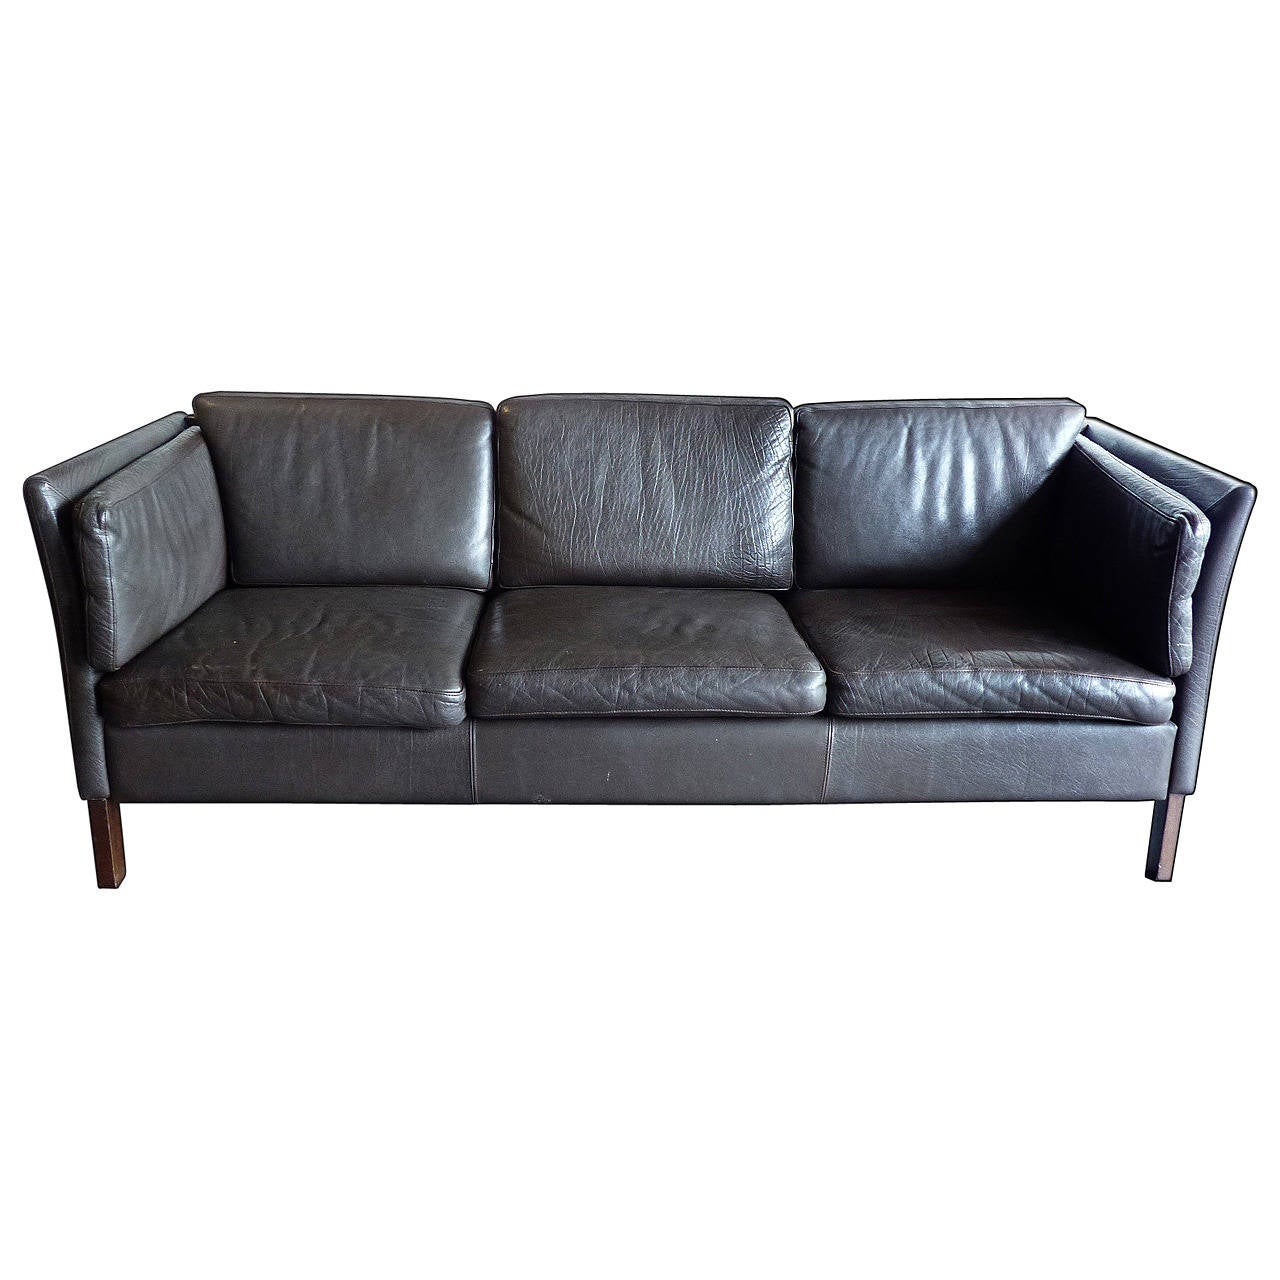 Leather mid century modern sofa at 1stdibs for Modern leather furniture